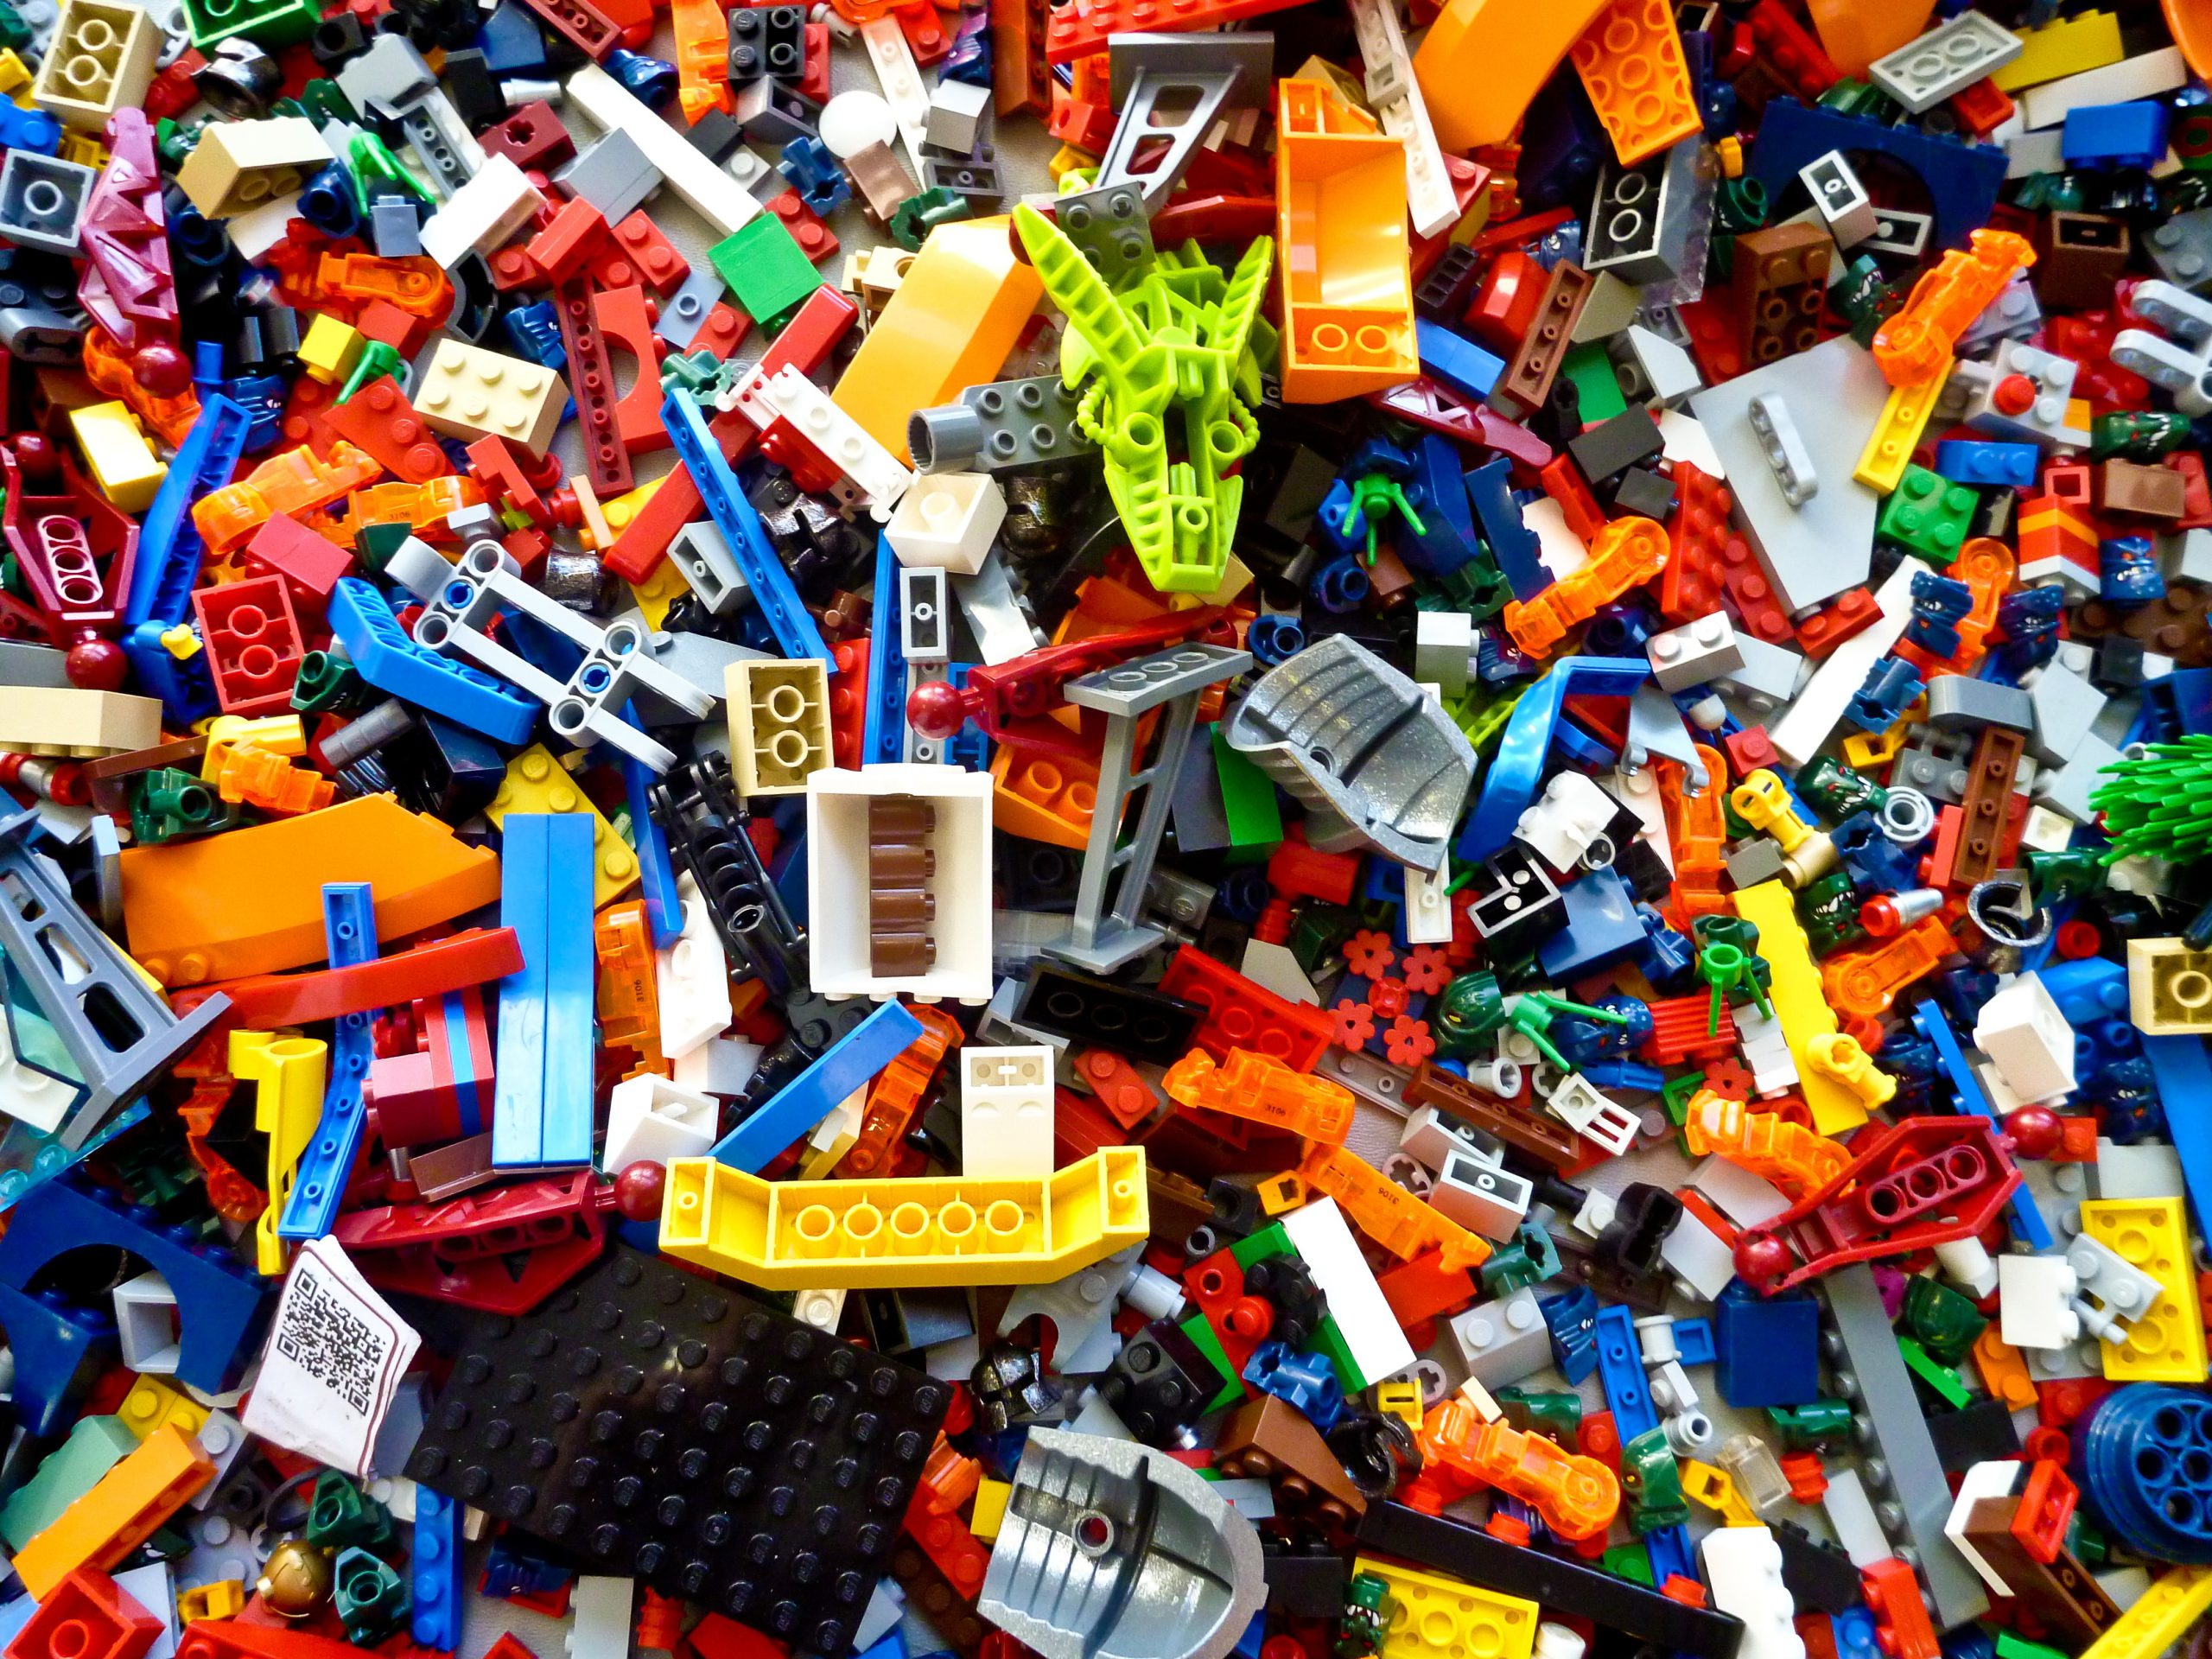 Big messy pile of Lego